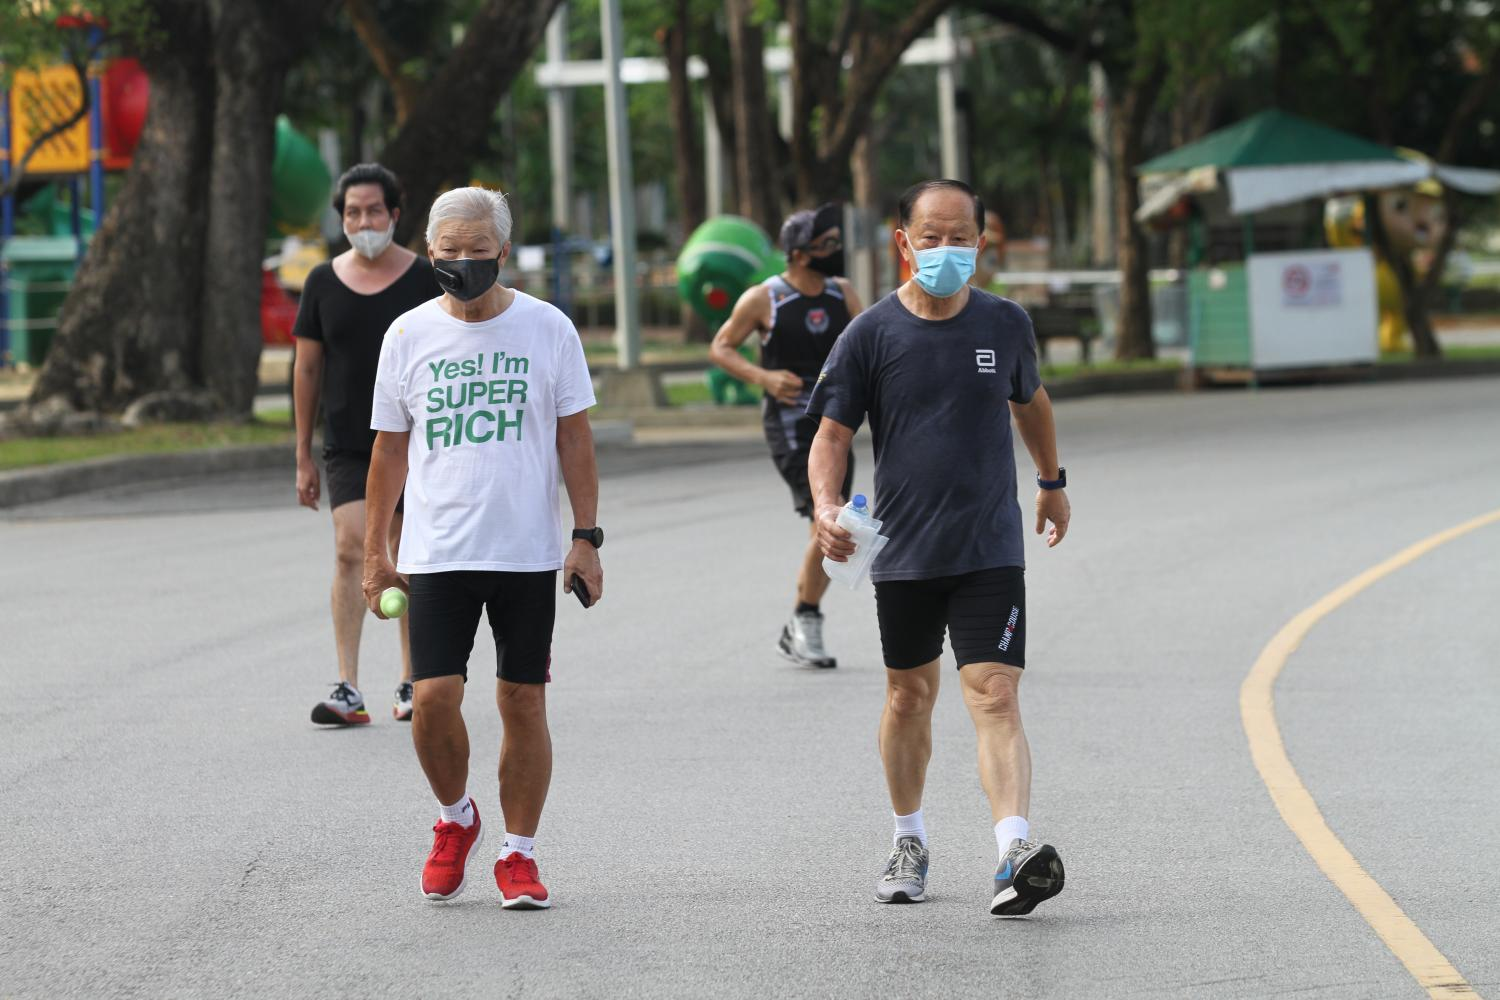 People wear face masks while out for a morning jog in Lumpini Park. City Hall has warned it might close parks again, after re-opening them on May 3, as many people are ignoring social distancing rules.(Photo by Nutthawat Wicheanbut)